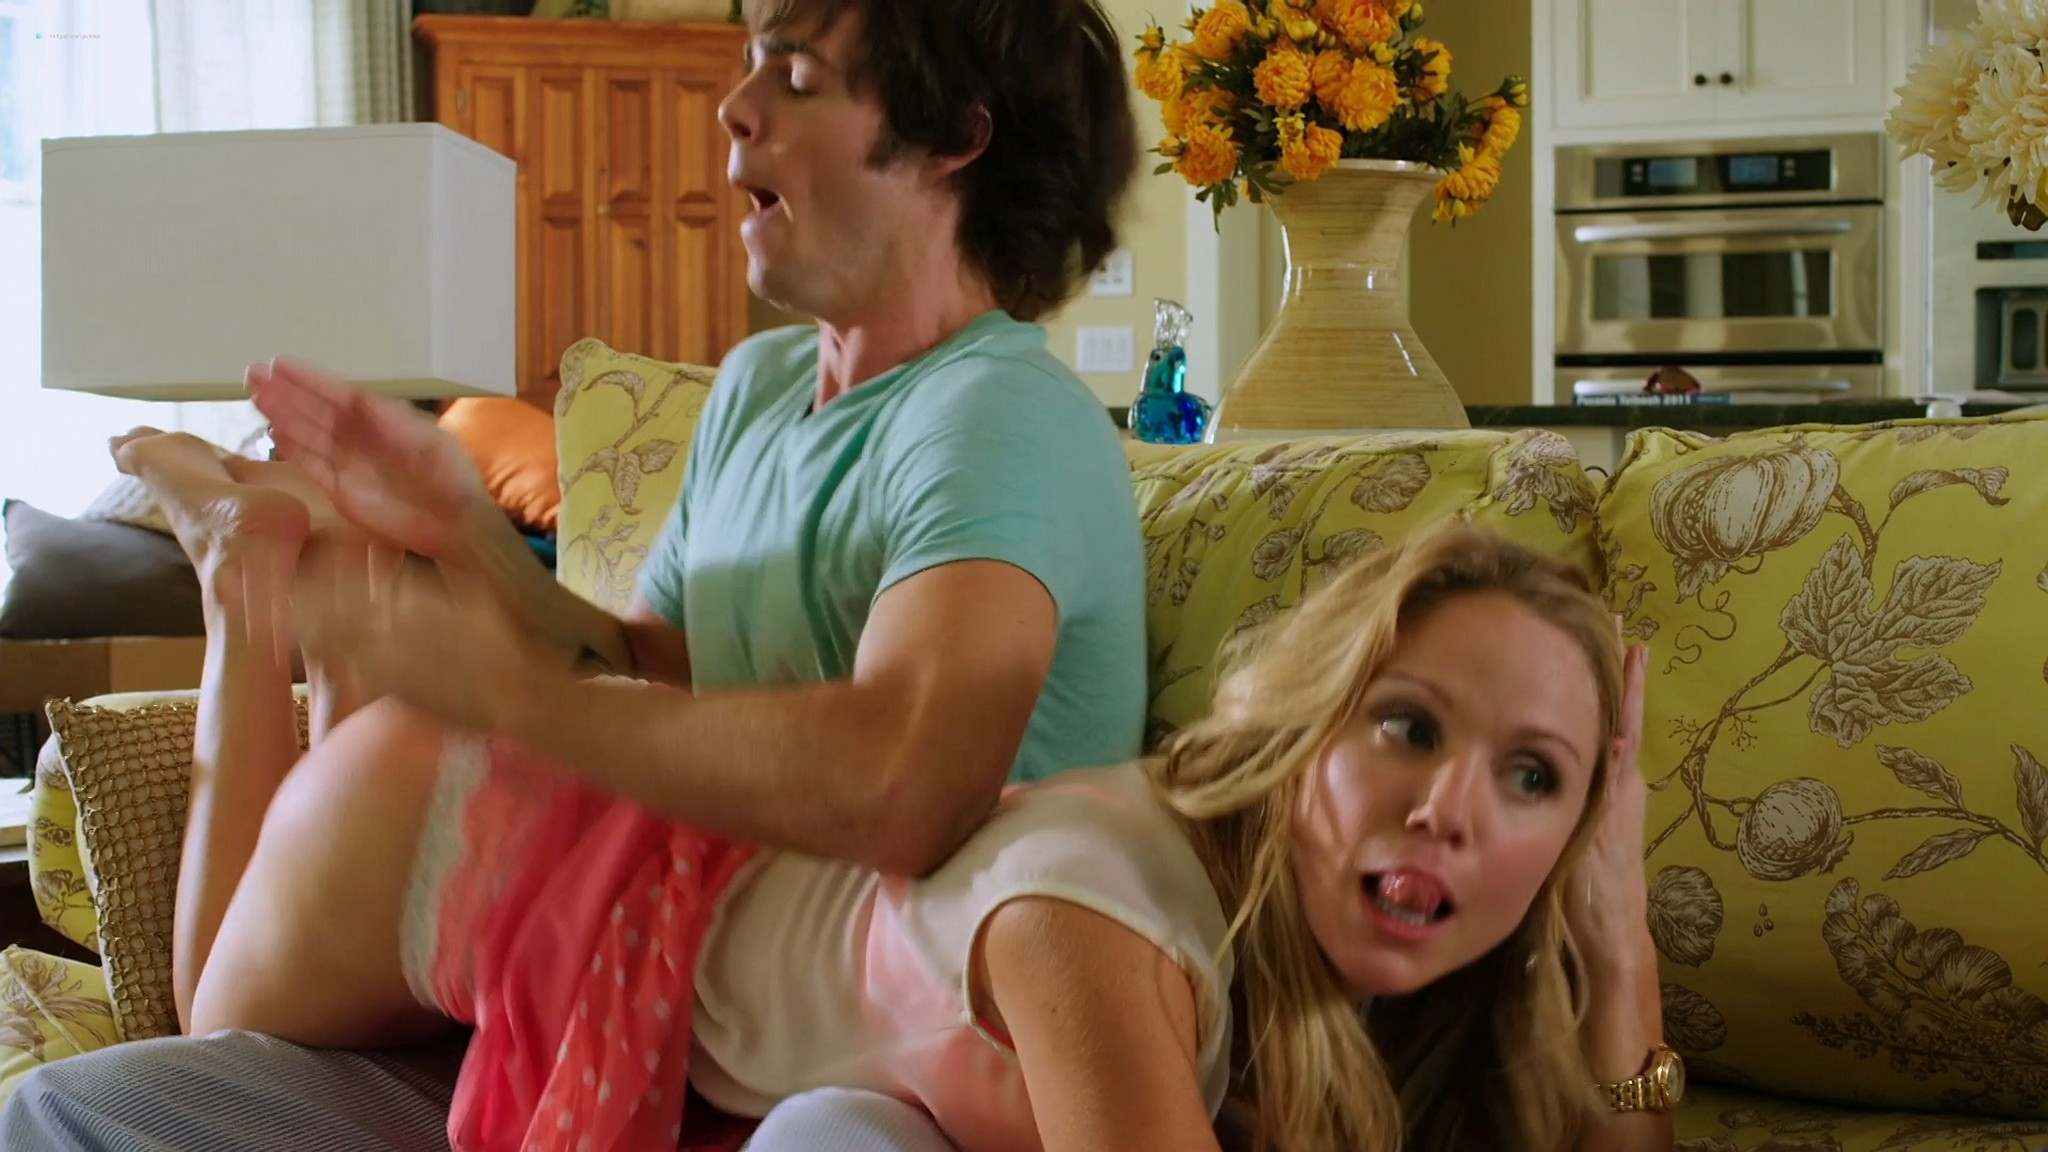 Virginia Williams hot Tammin Sursok Lucila Sola and others nude and sexy 10 Rules for Sleeping Around 2013 1080p BluRay REMUX 7